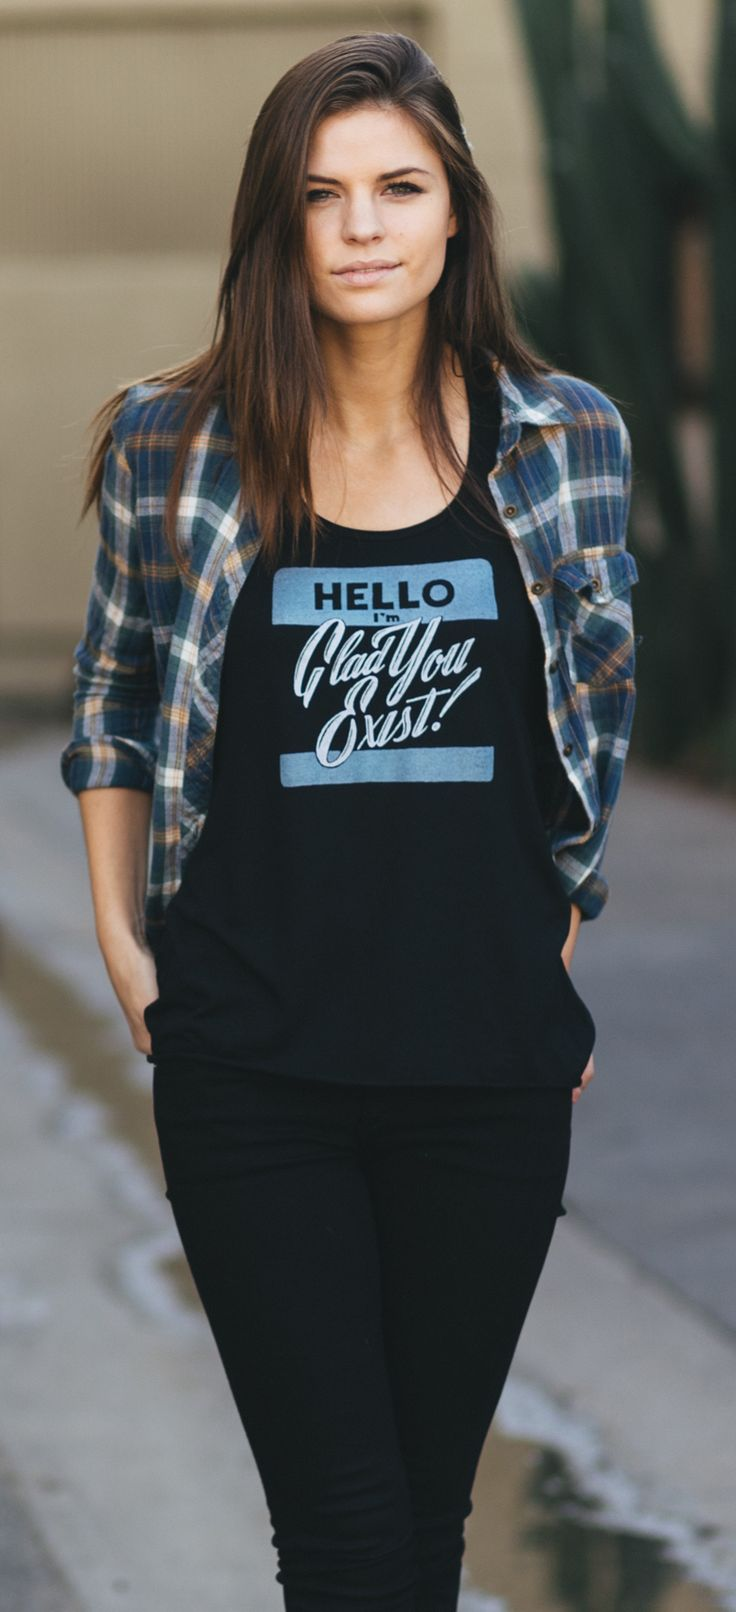 I am SO glad that you exist! Grab this tank and share the message :) #Sevenly